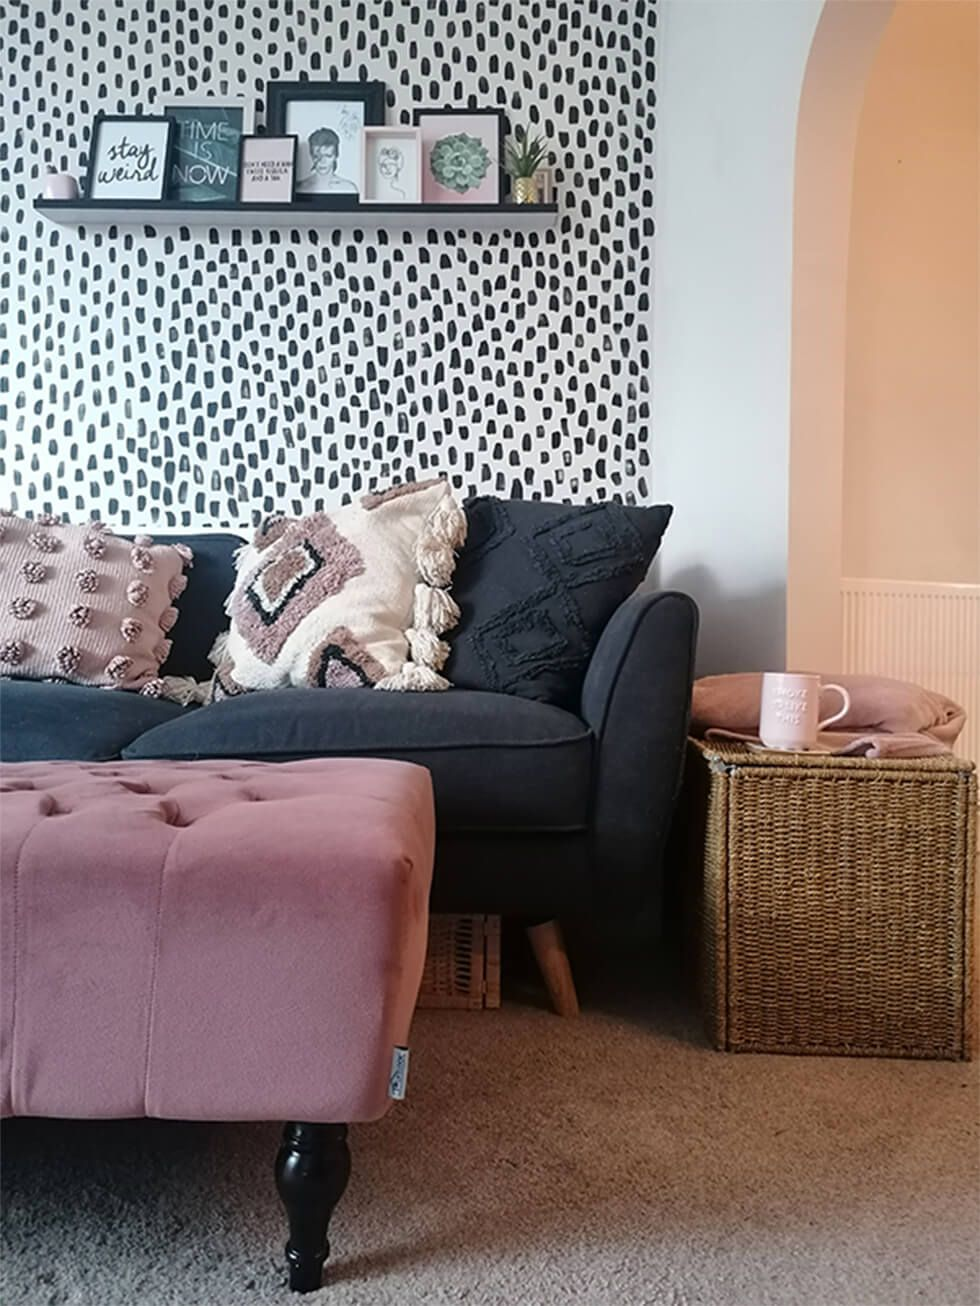 Grey sofa and pink ottoman in a living room with polka dot walls